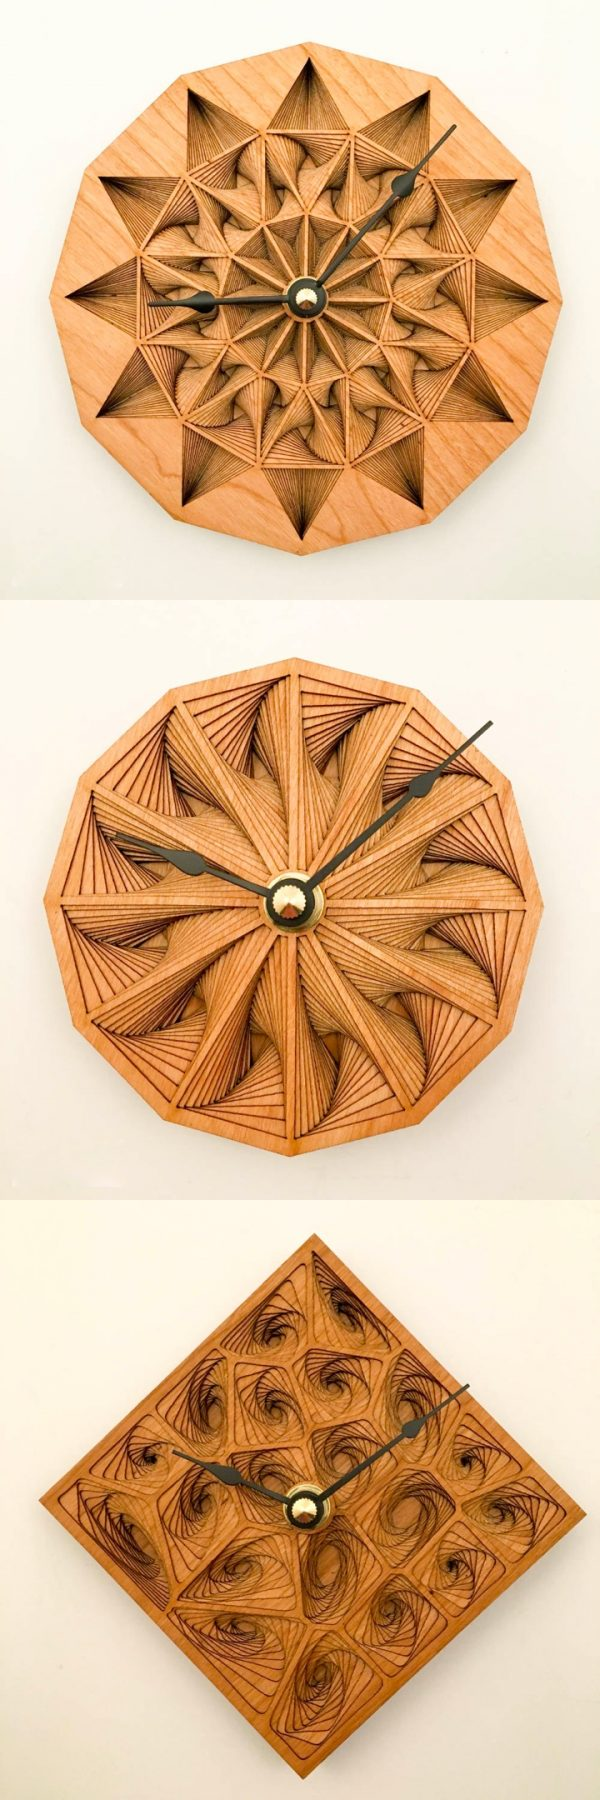 34 wooden wall clocks to warm up your interior amipublicfo Image collections